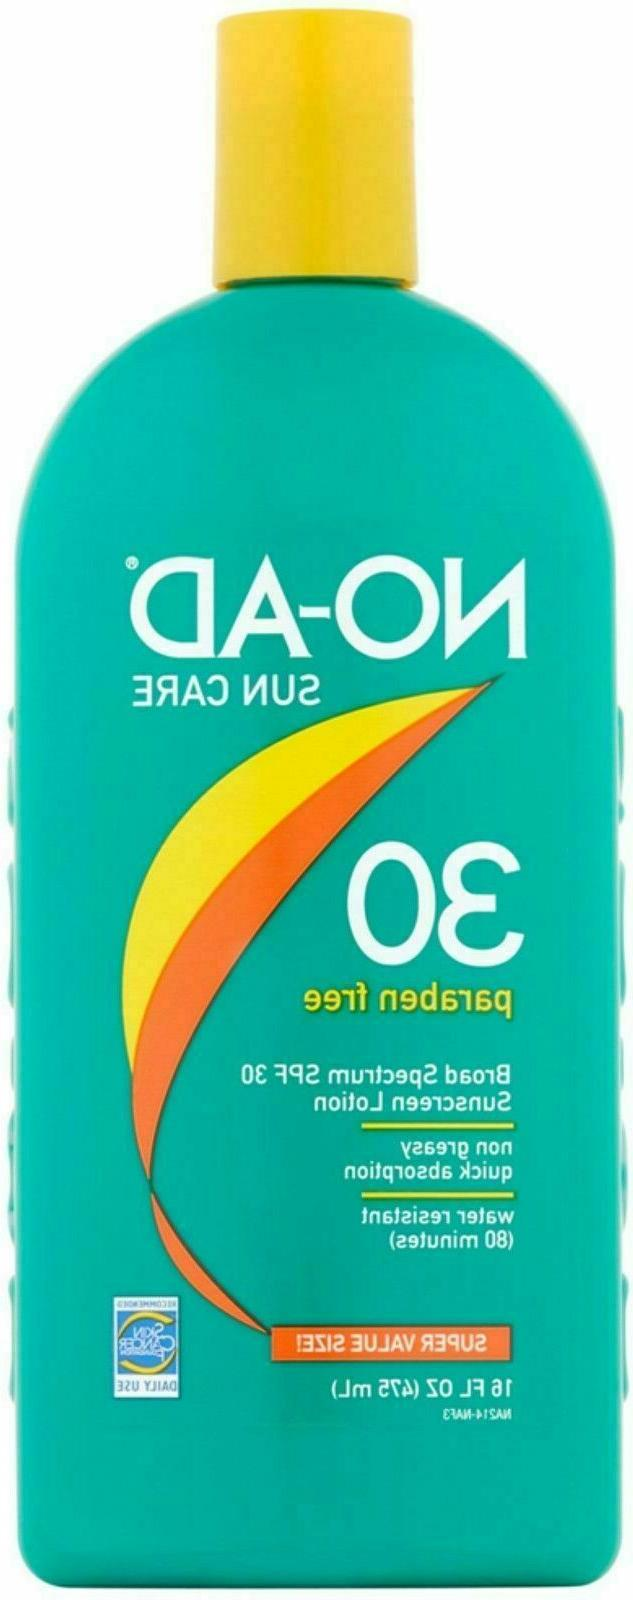 NO-AD Sun Care Sunscreen Lotion, SPF 30 16 oz